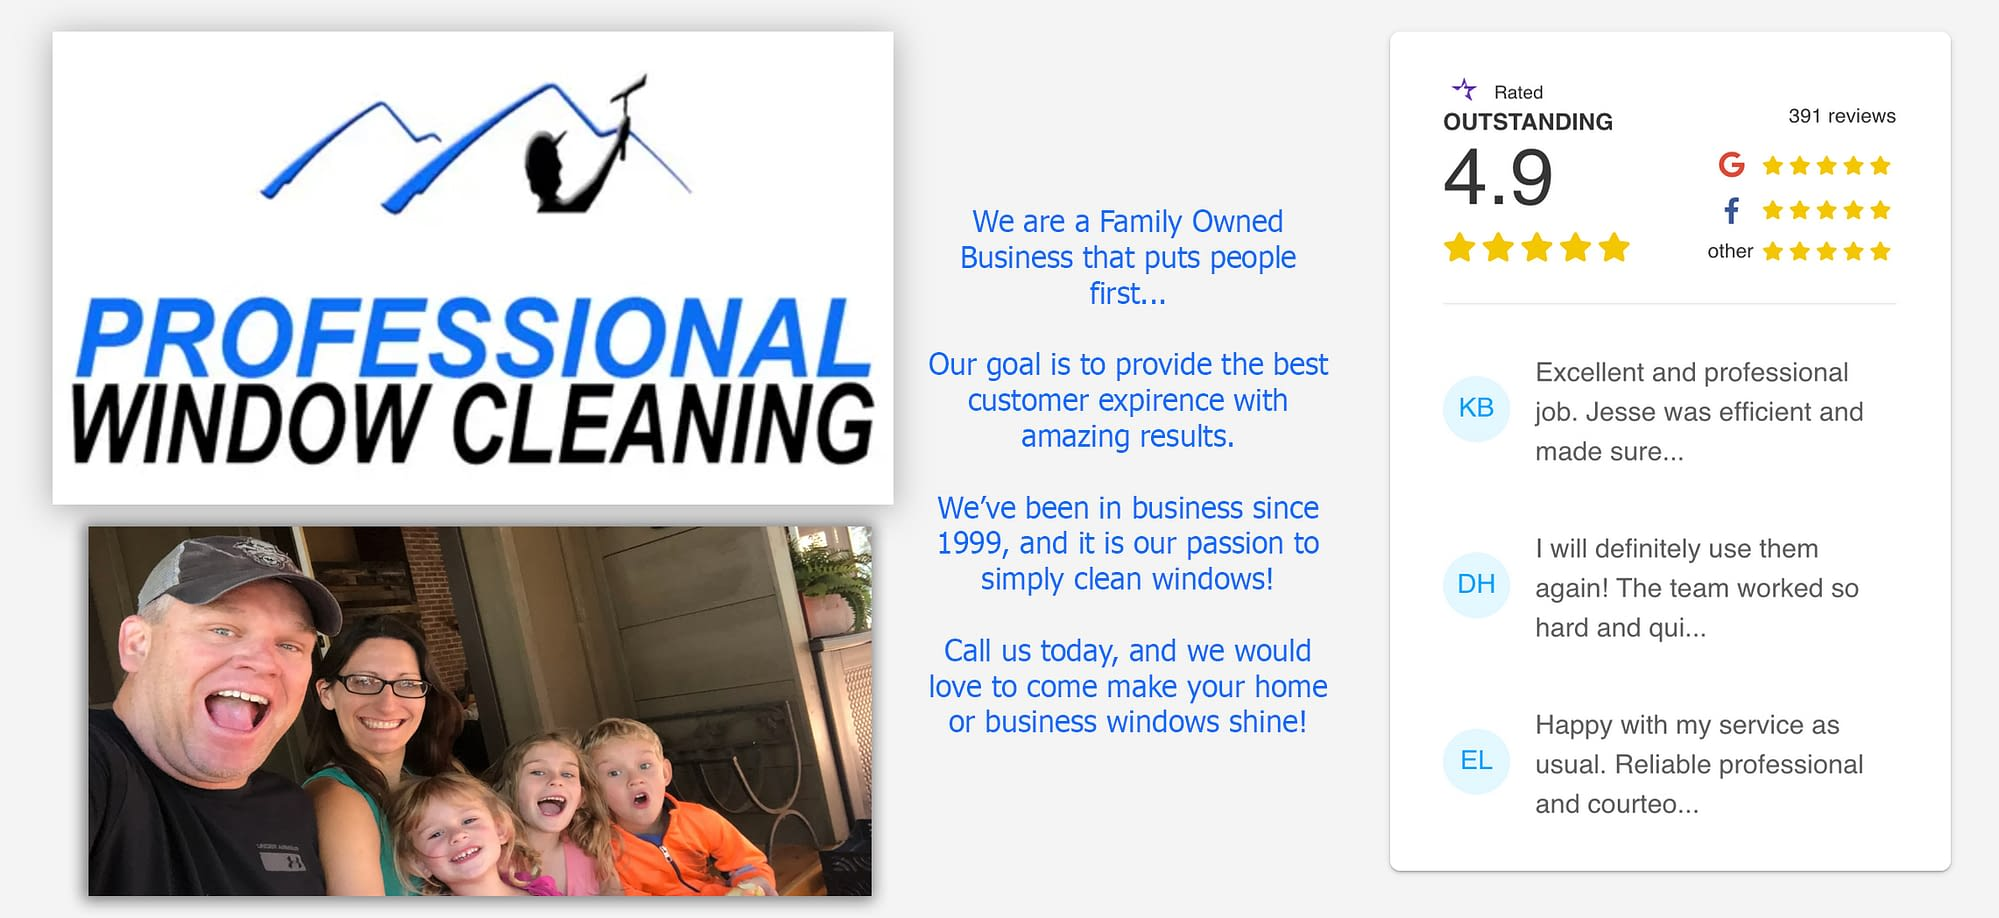 Professional Window Cleaning in Golden, CO